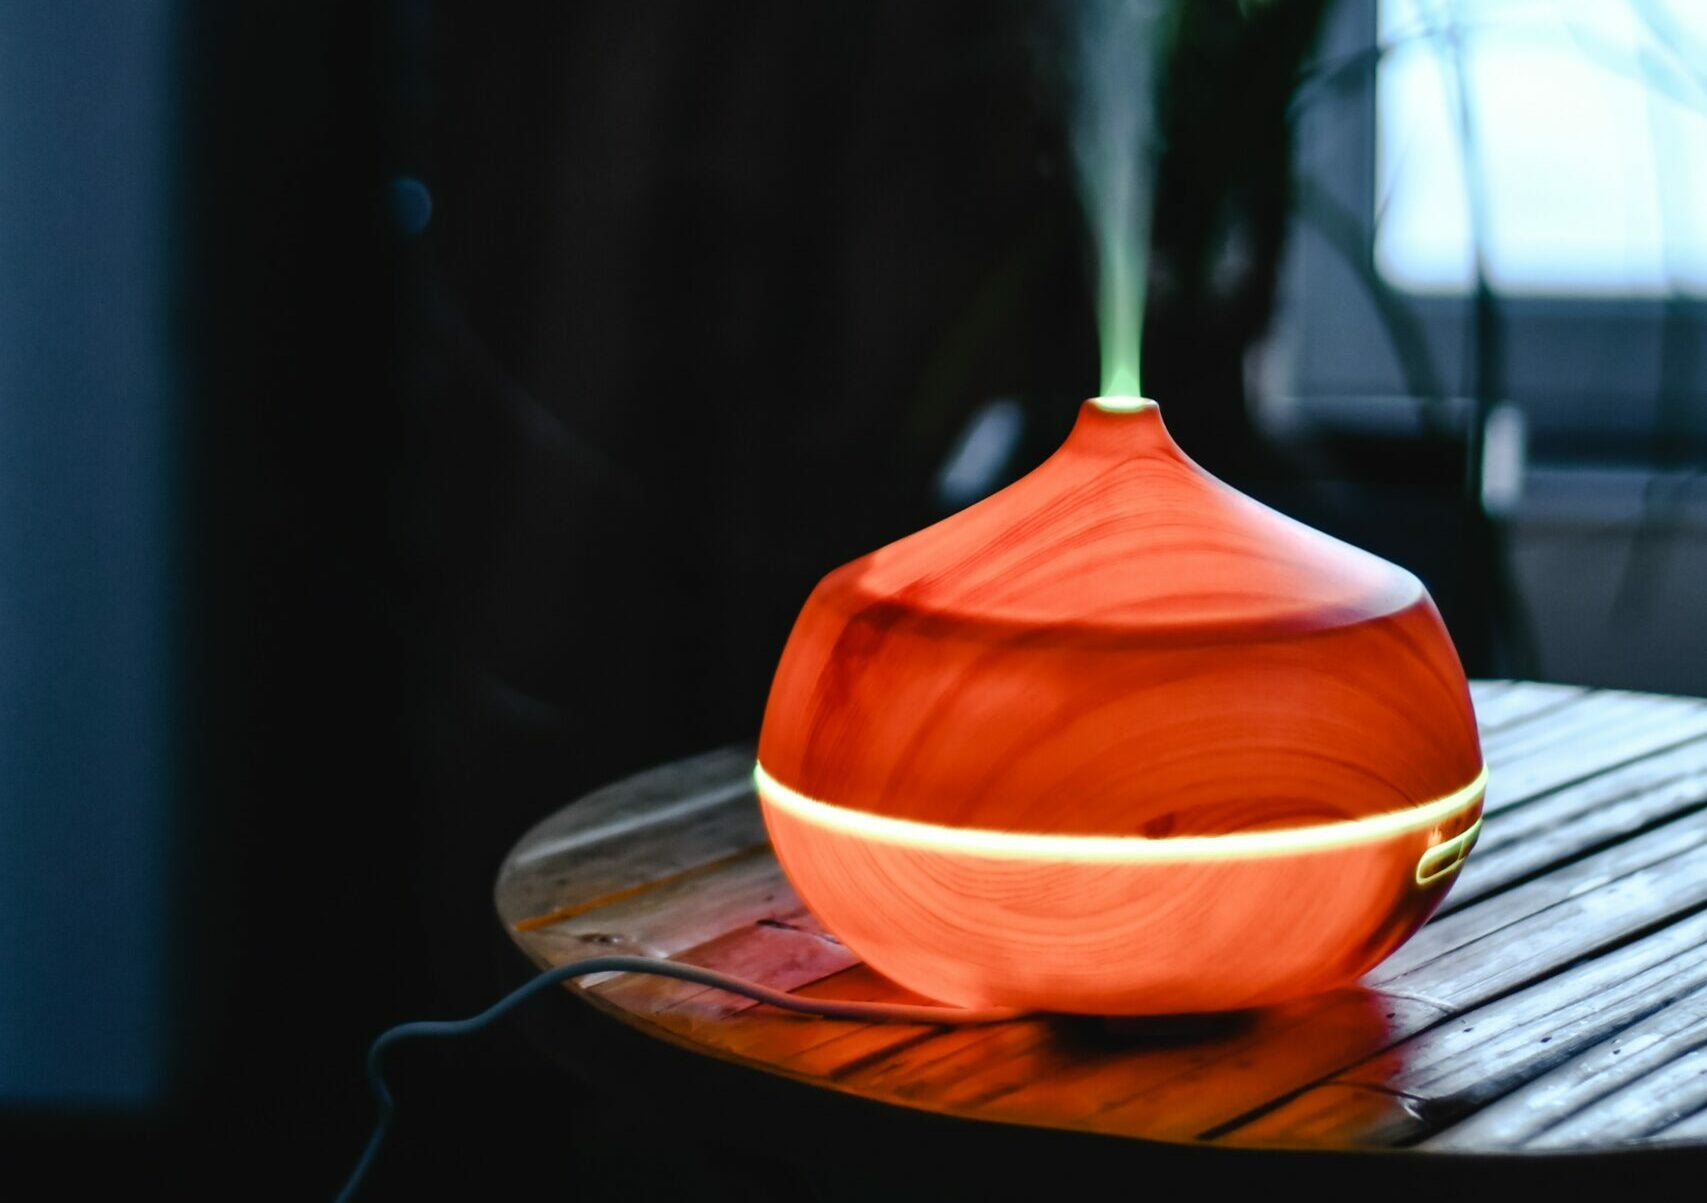 essential oil diffuser on a table